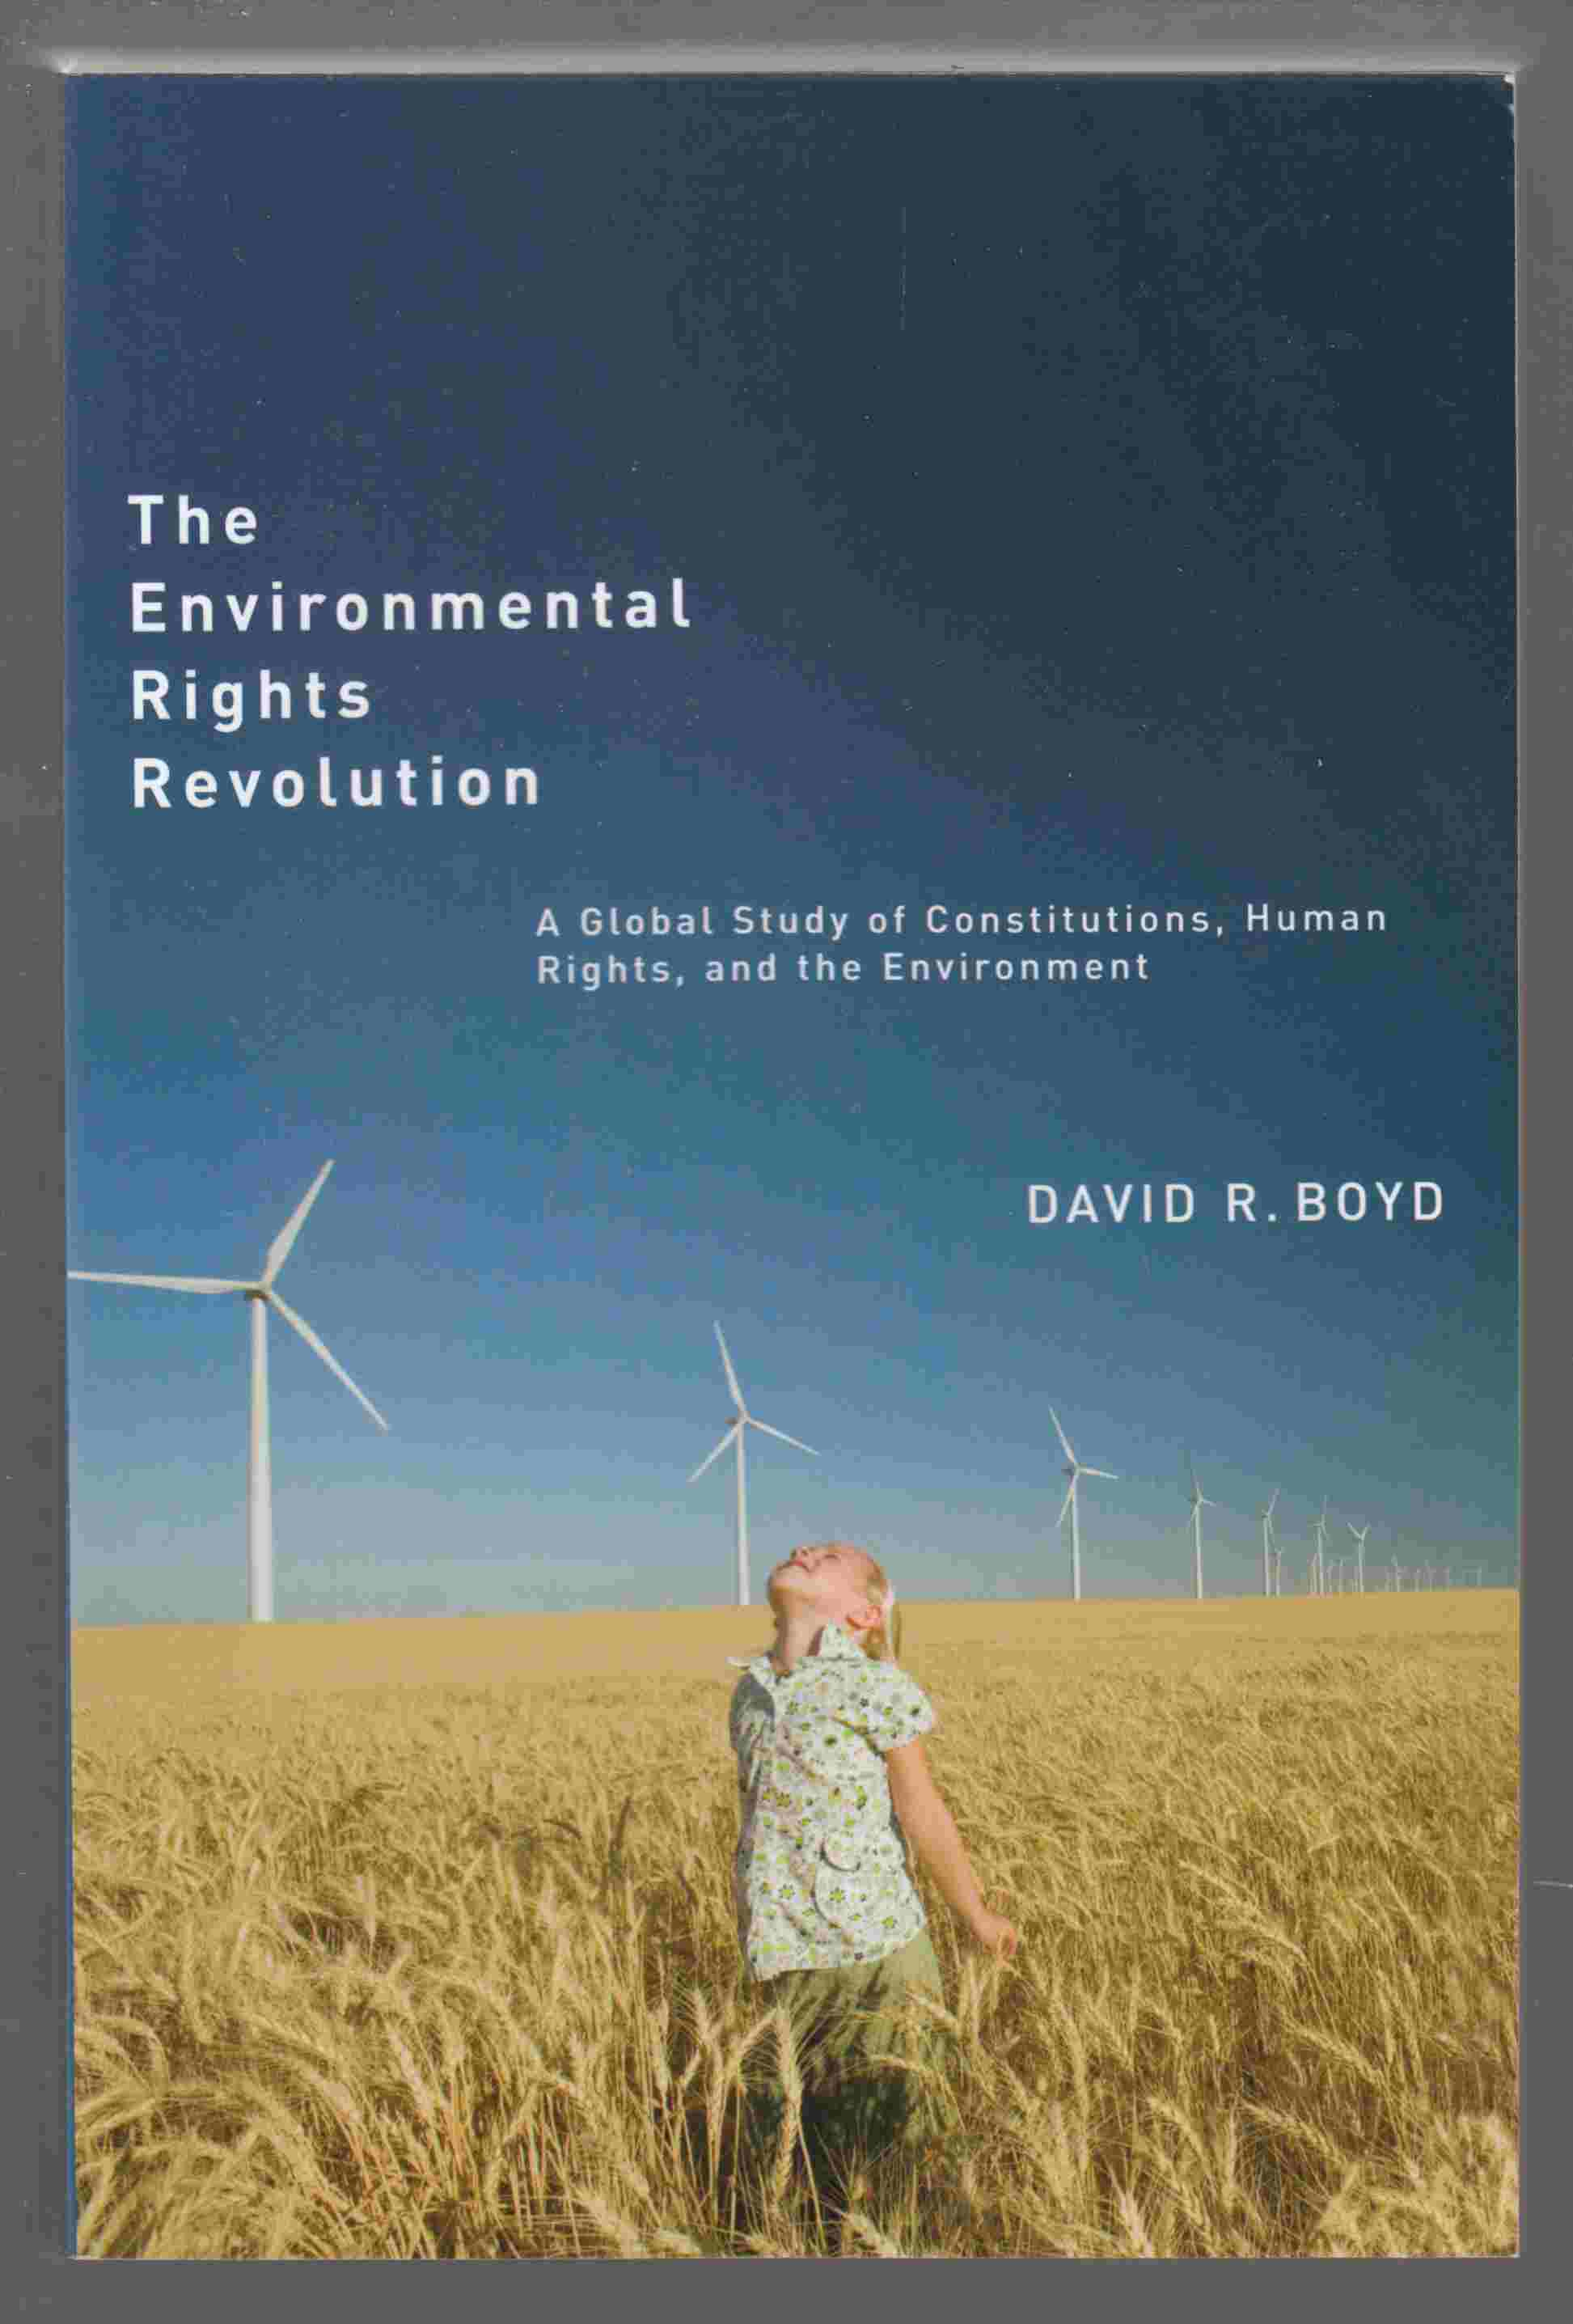 Image for The Environmental Rights Revolution A Global Study of Constitutions, Human Rights, and the Environment